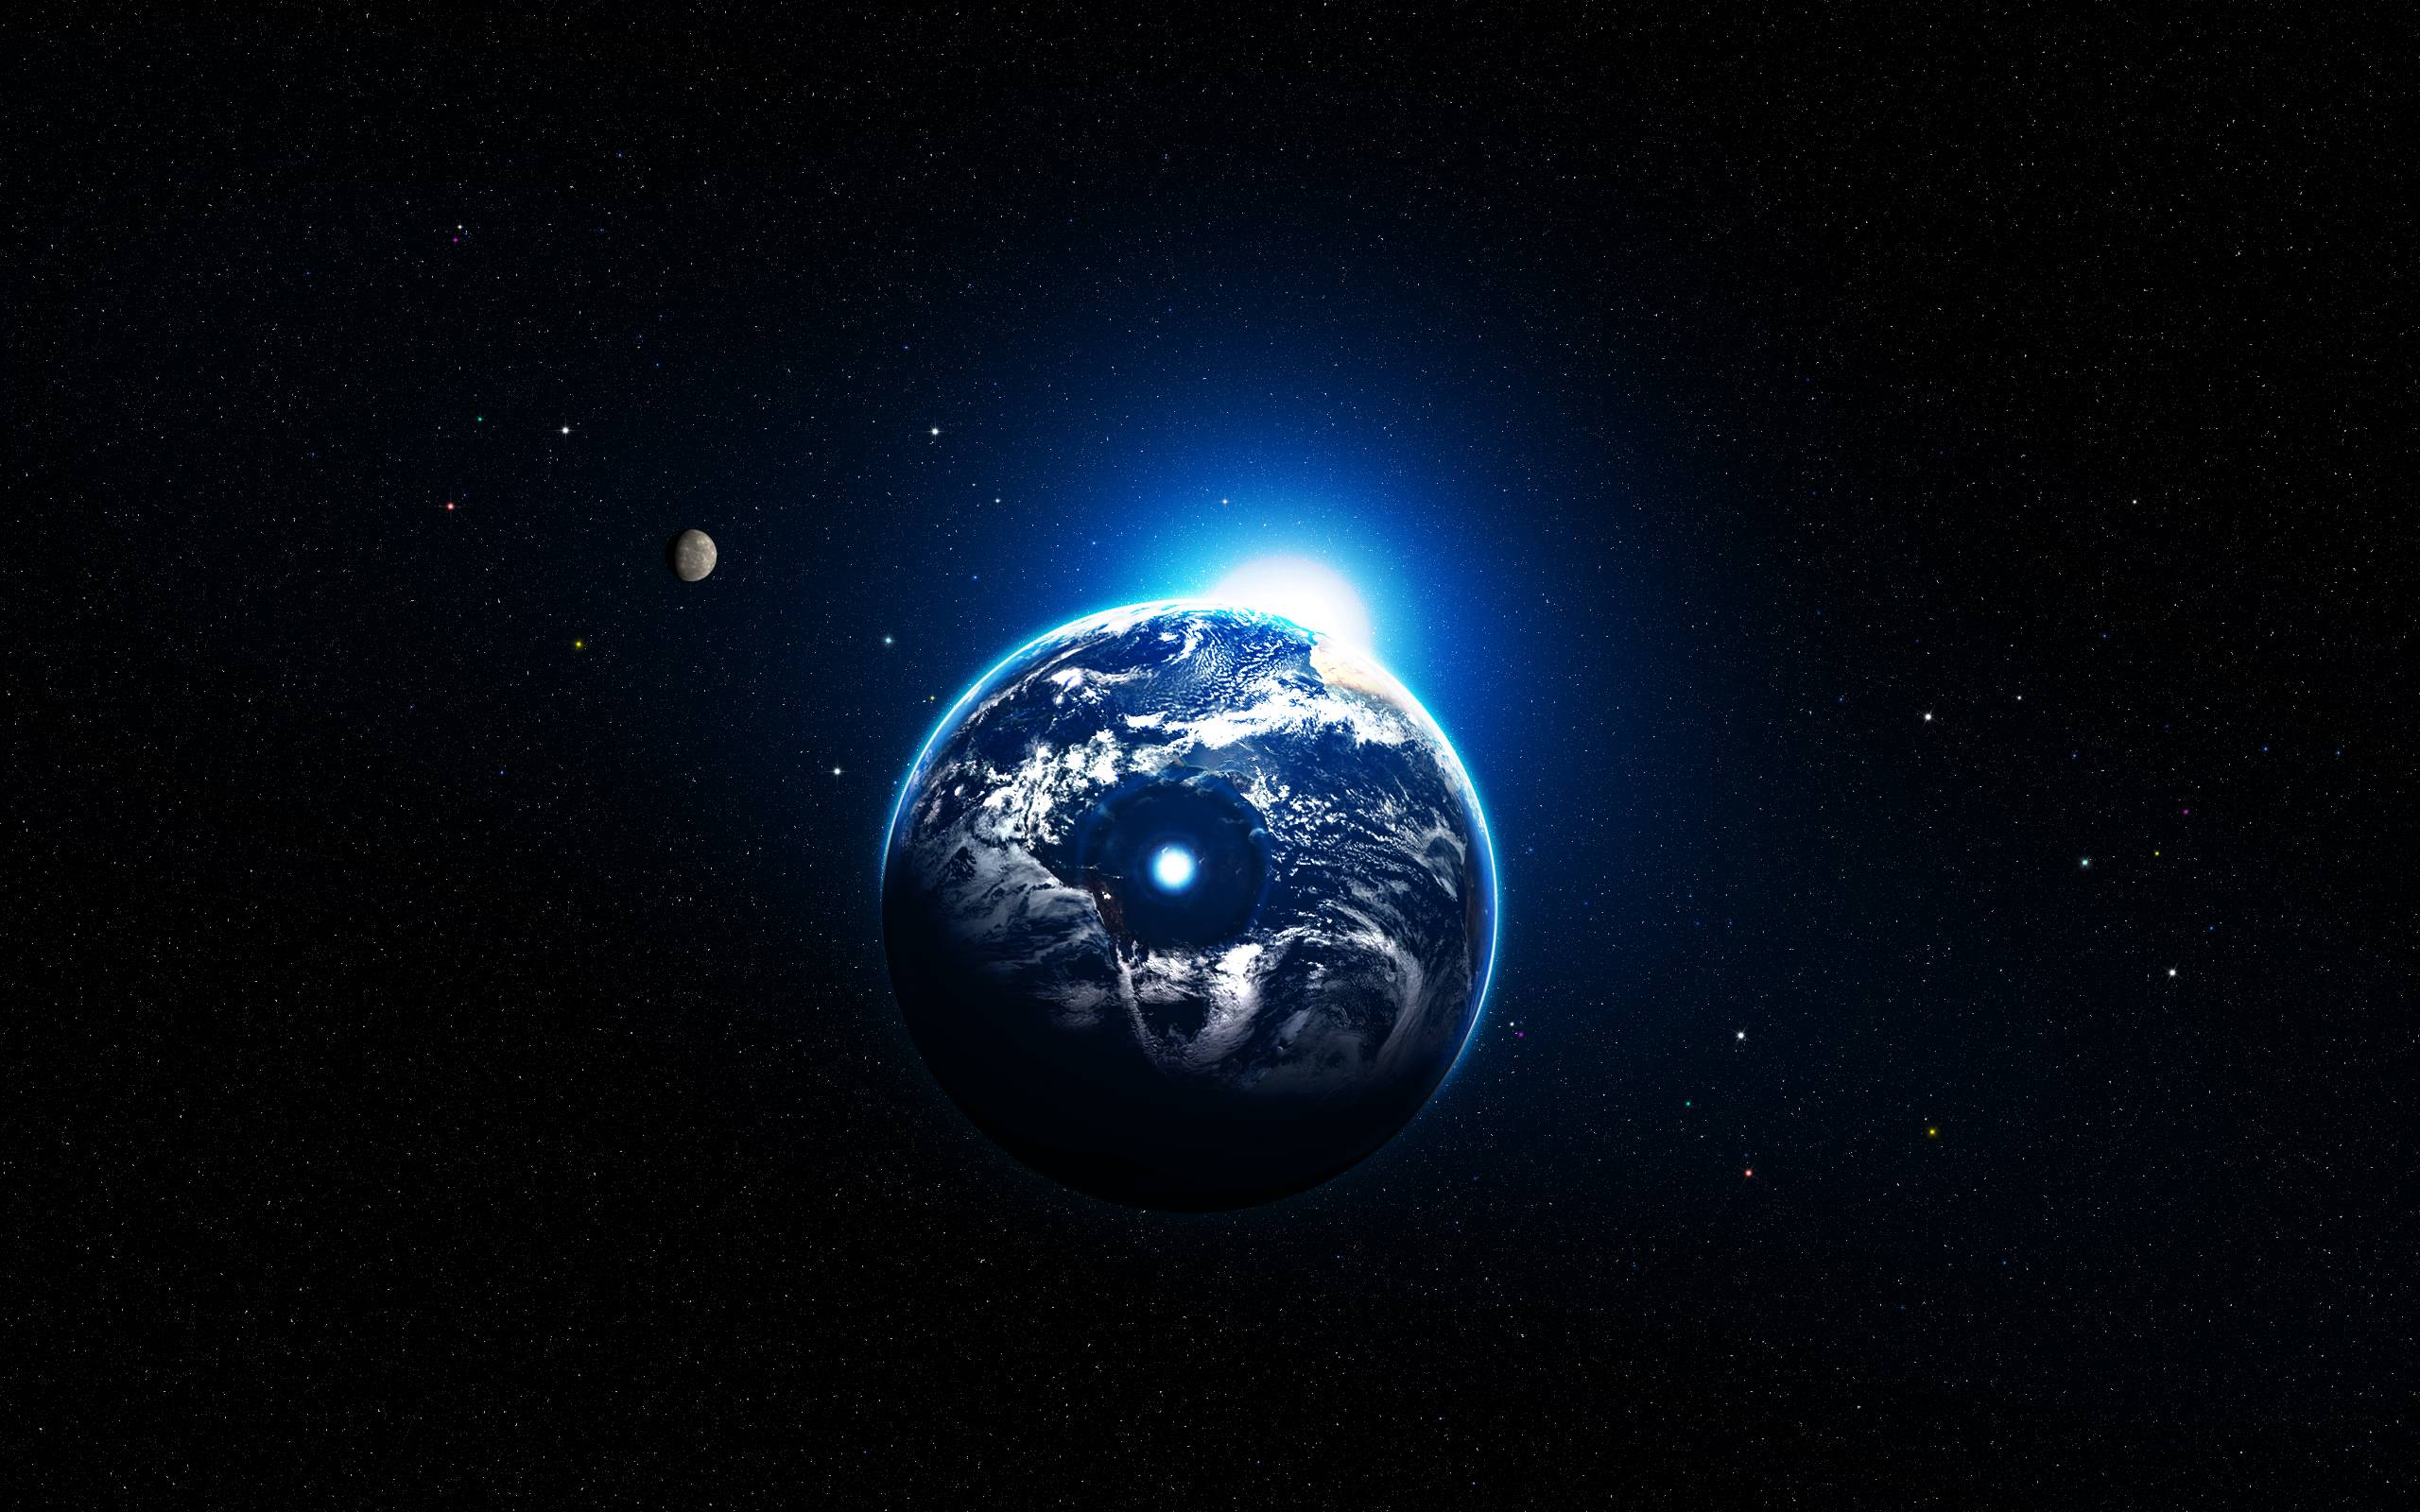 Wallpapers For > Earth Wallpaper Hd Iphone